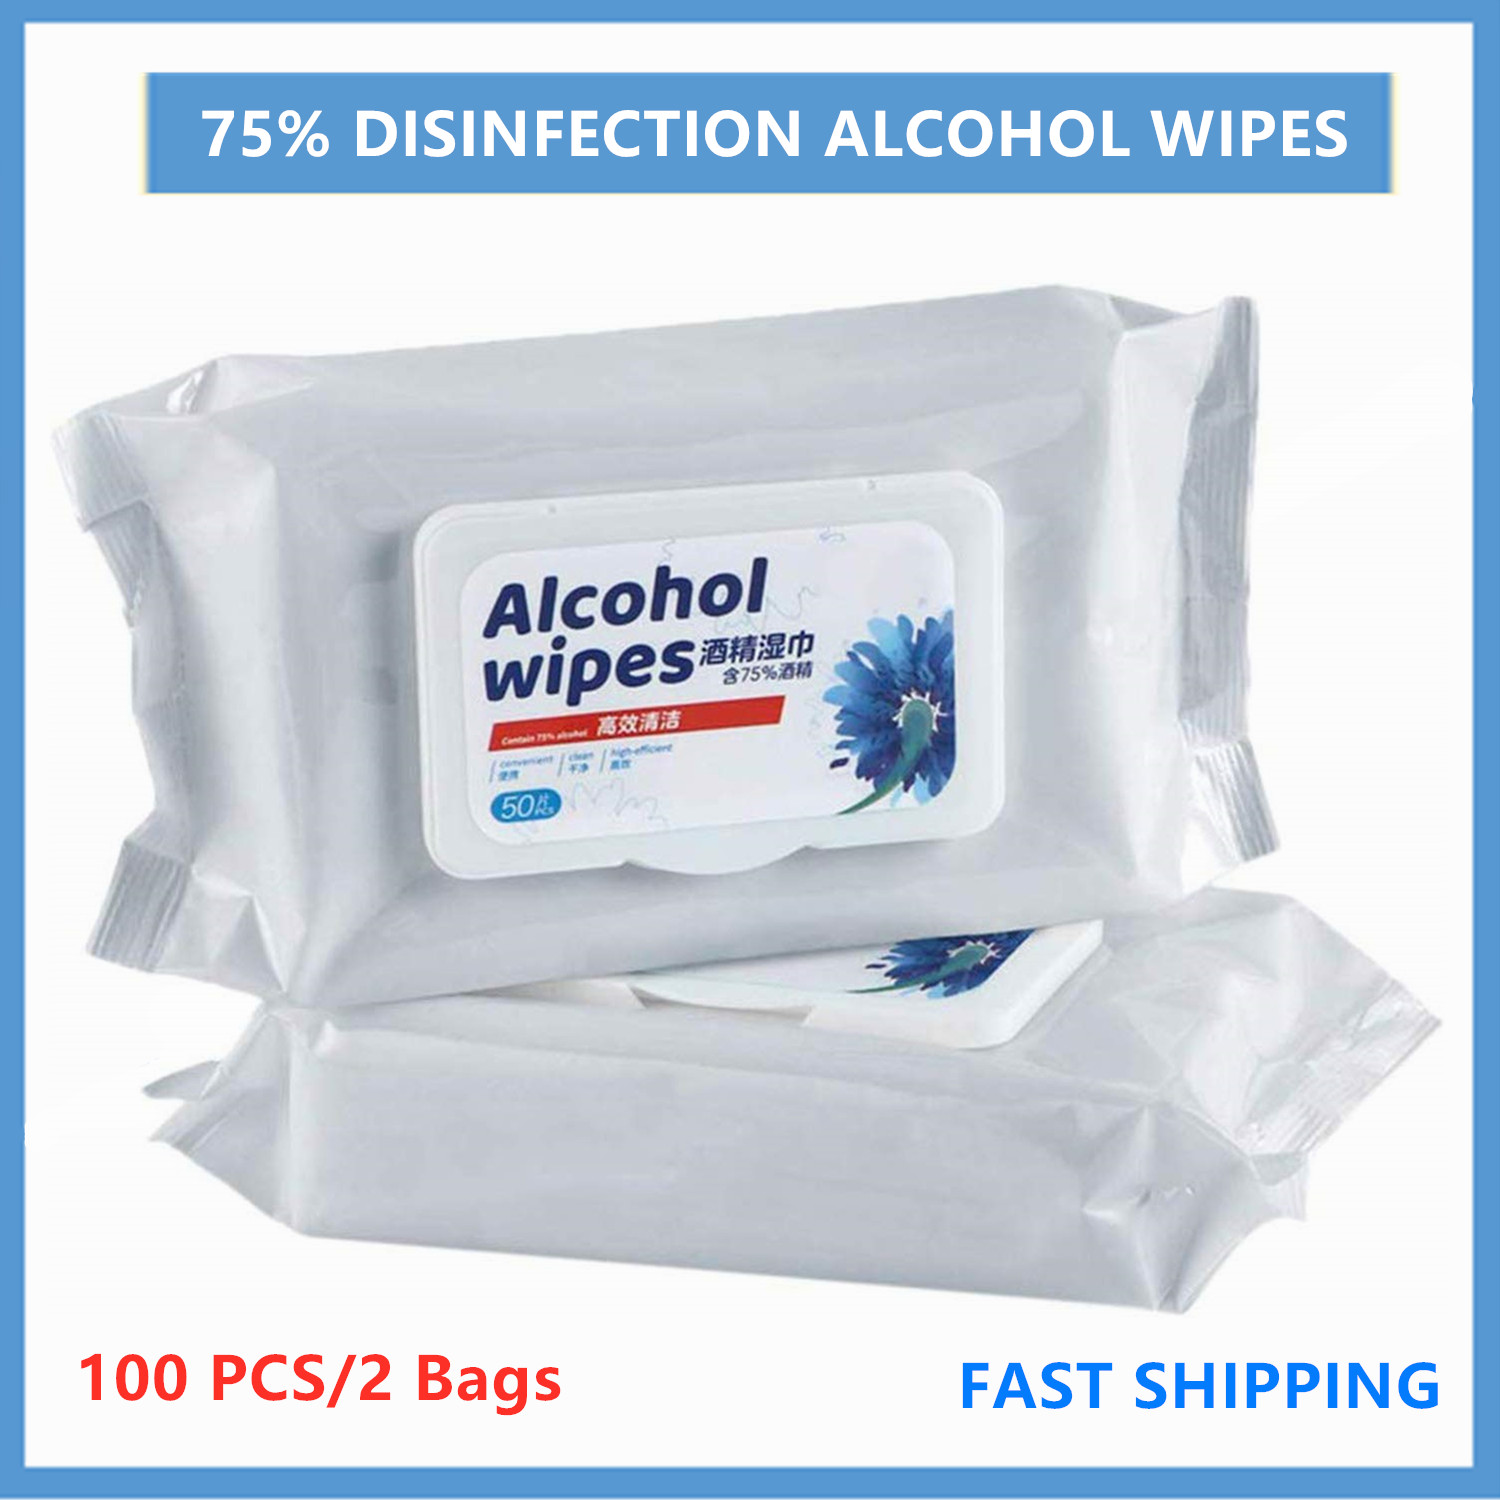 Disinfection Alcohol Wipes 75% Sterilization Skin Cleaning Care Disposable Disinfection Wipes First Aid Household Portable Wipes